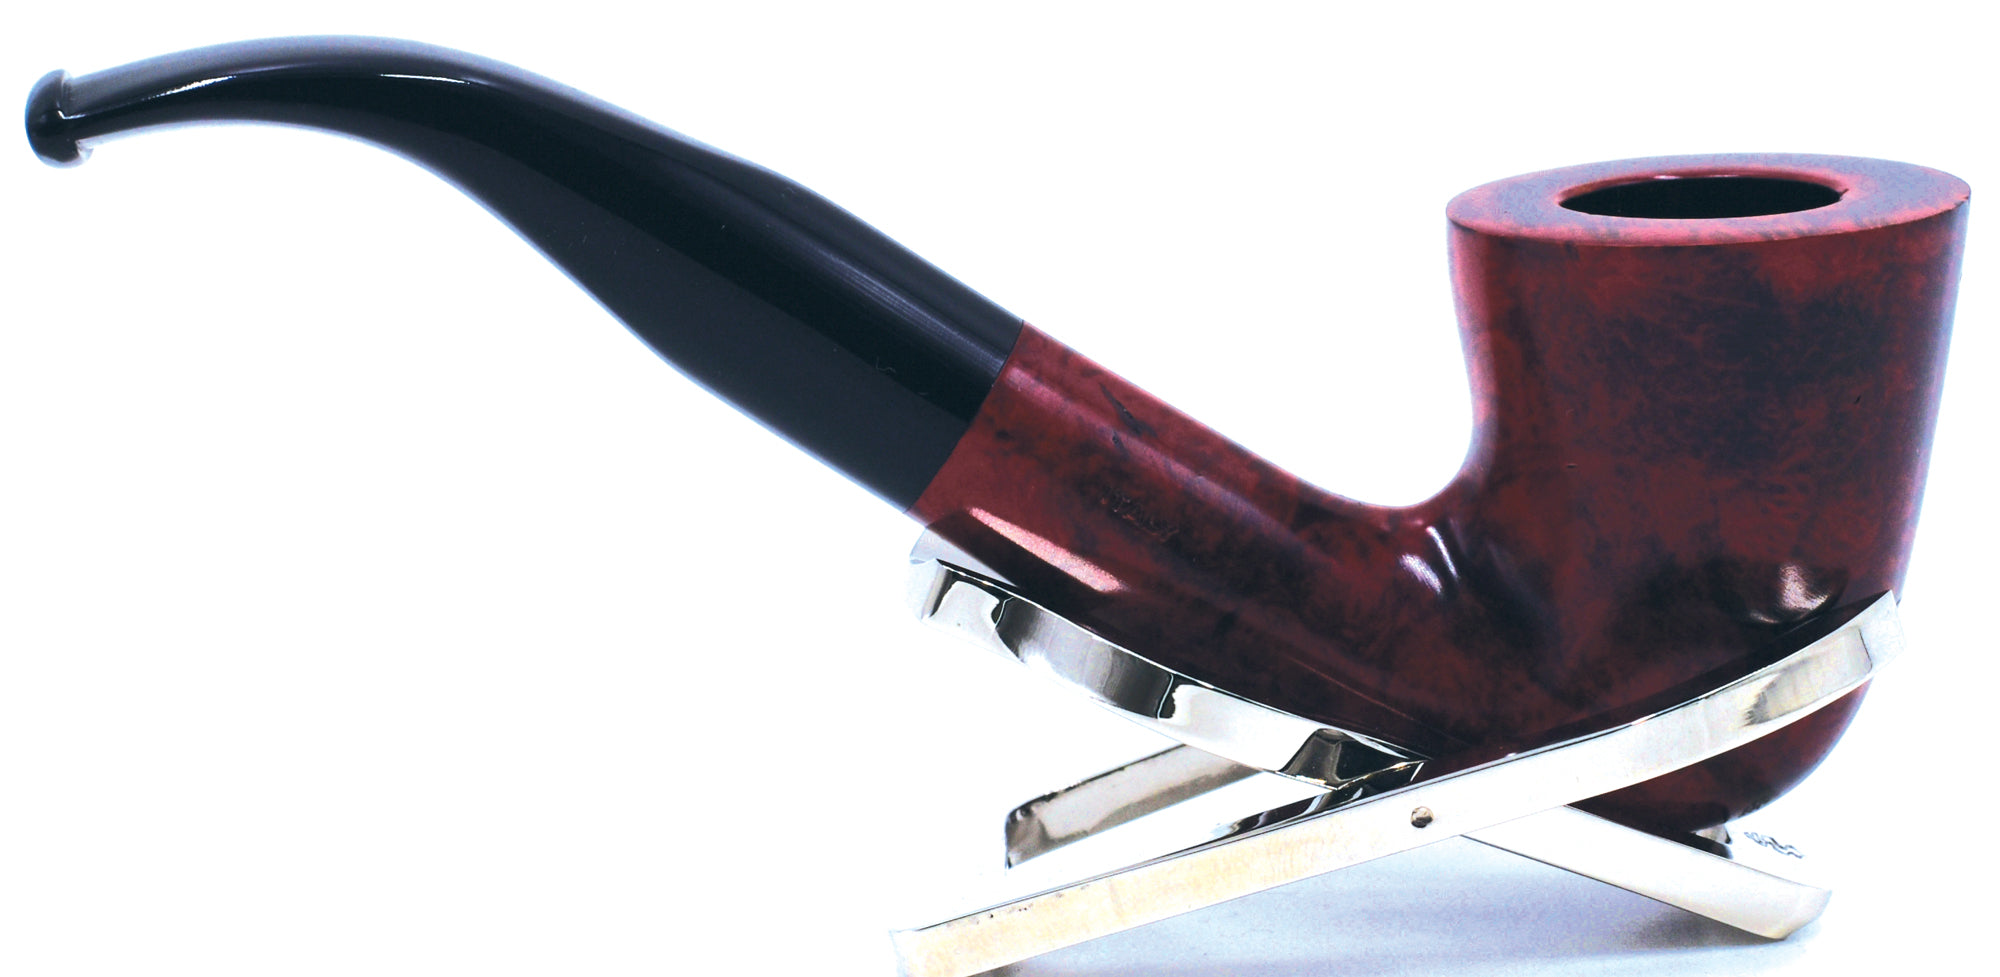 LEGENDEX® PAGANINI* 9 MM Filtered Briar Smoking Pipe Made In Italy 01-08-352